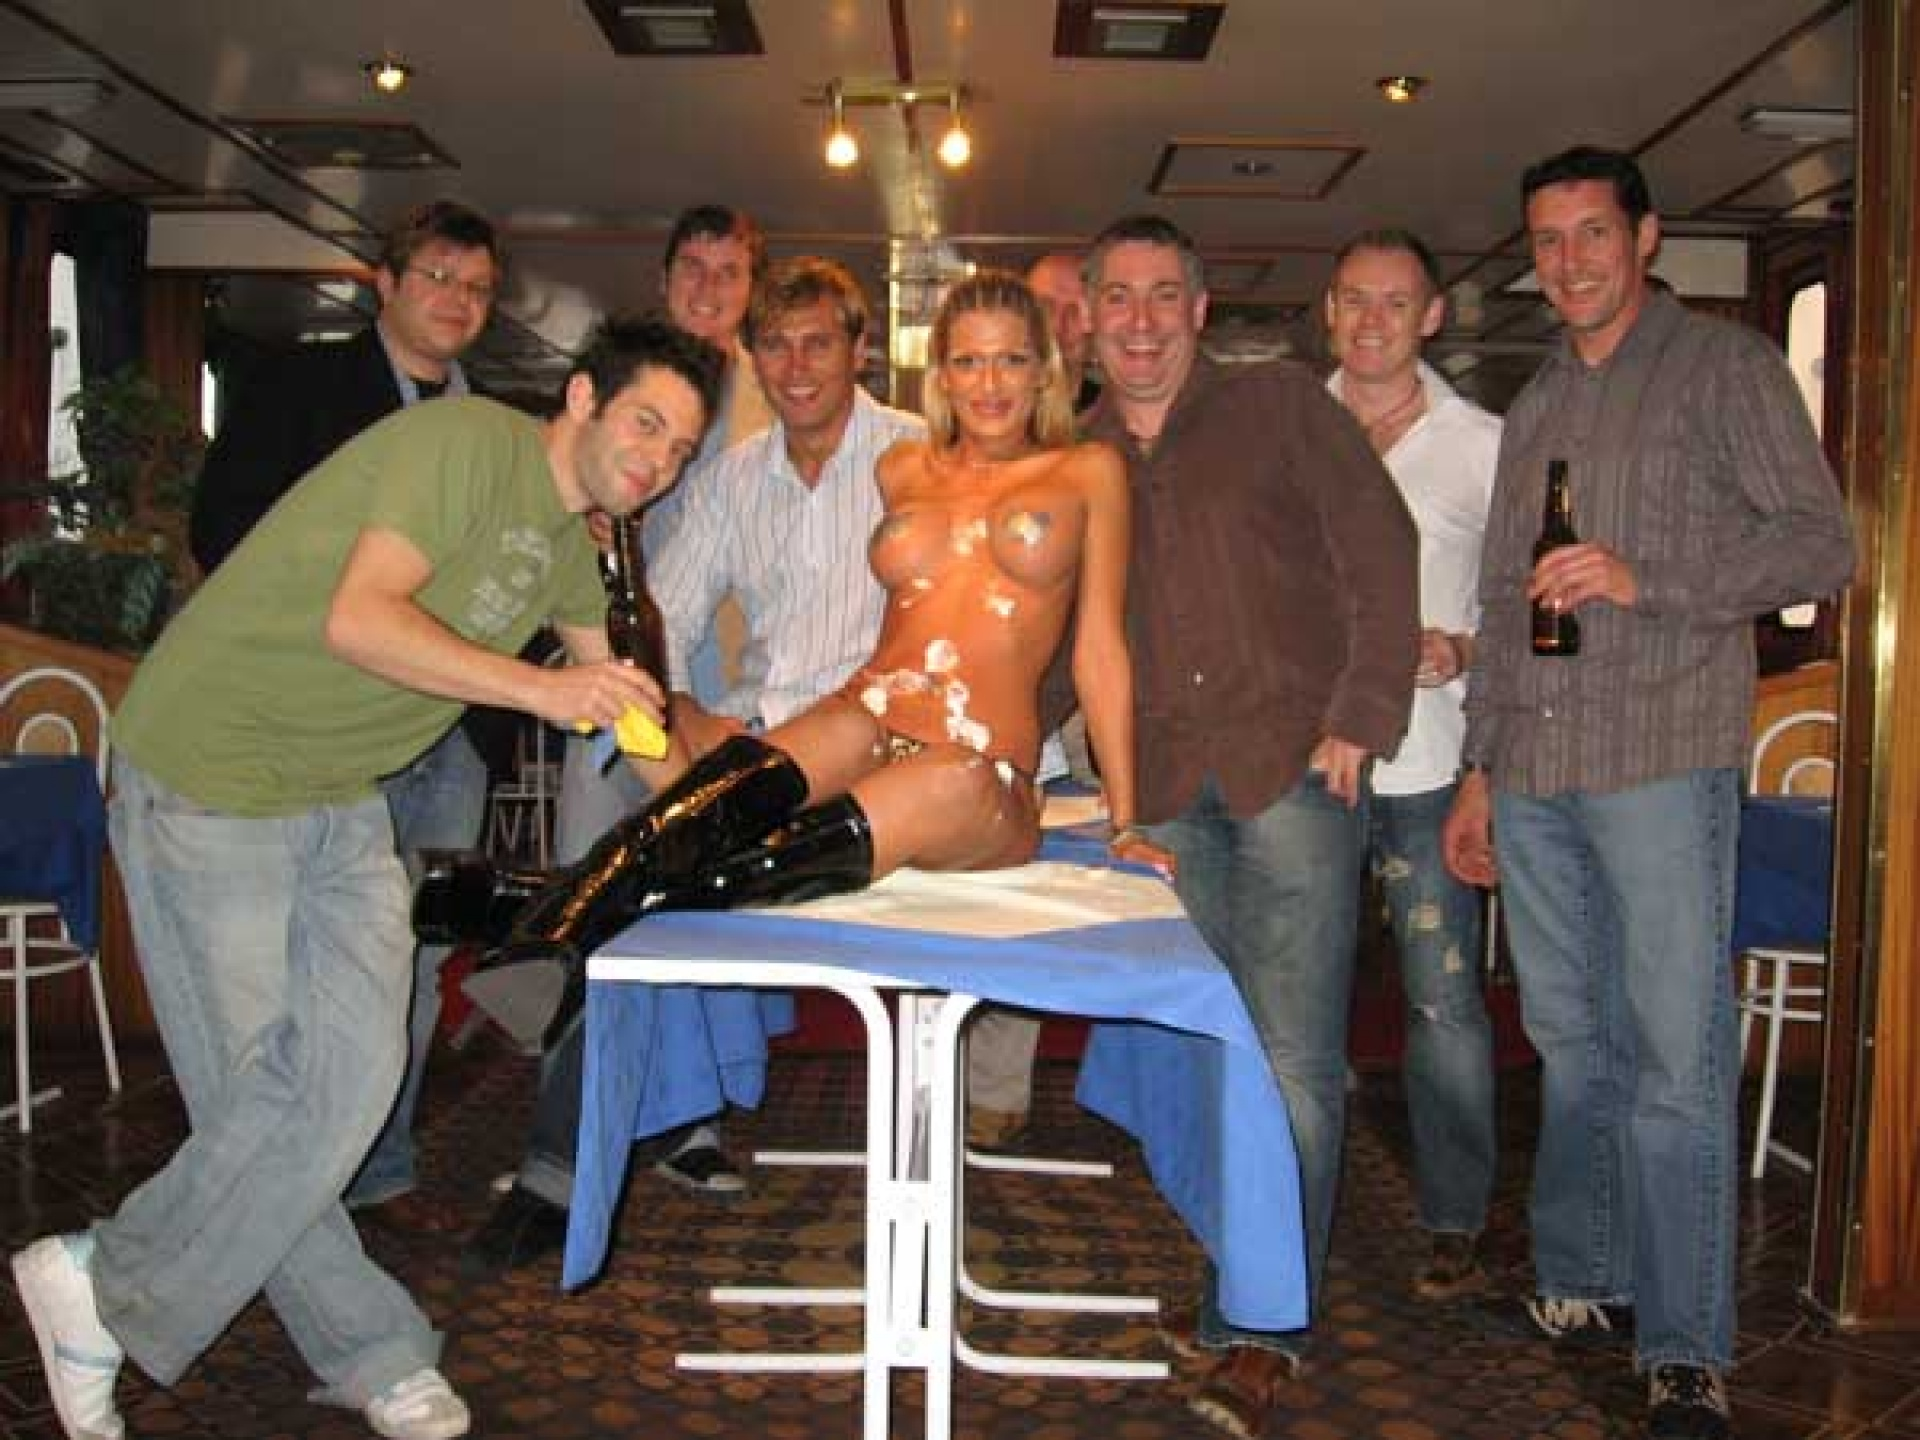 Lads group with desert girl covered in cream